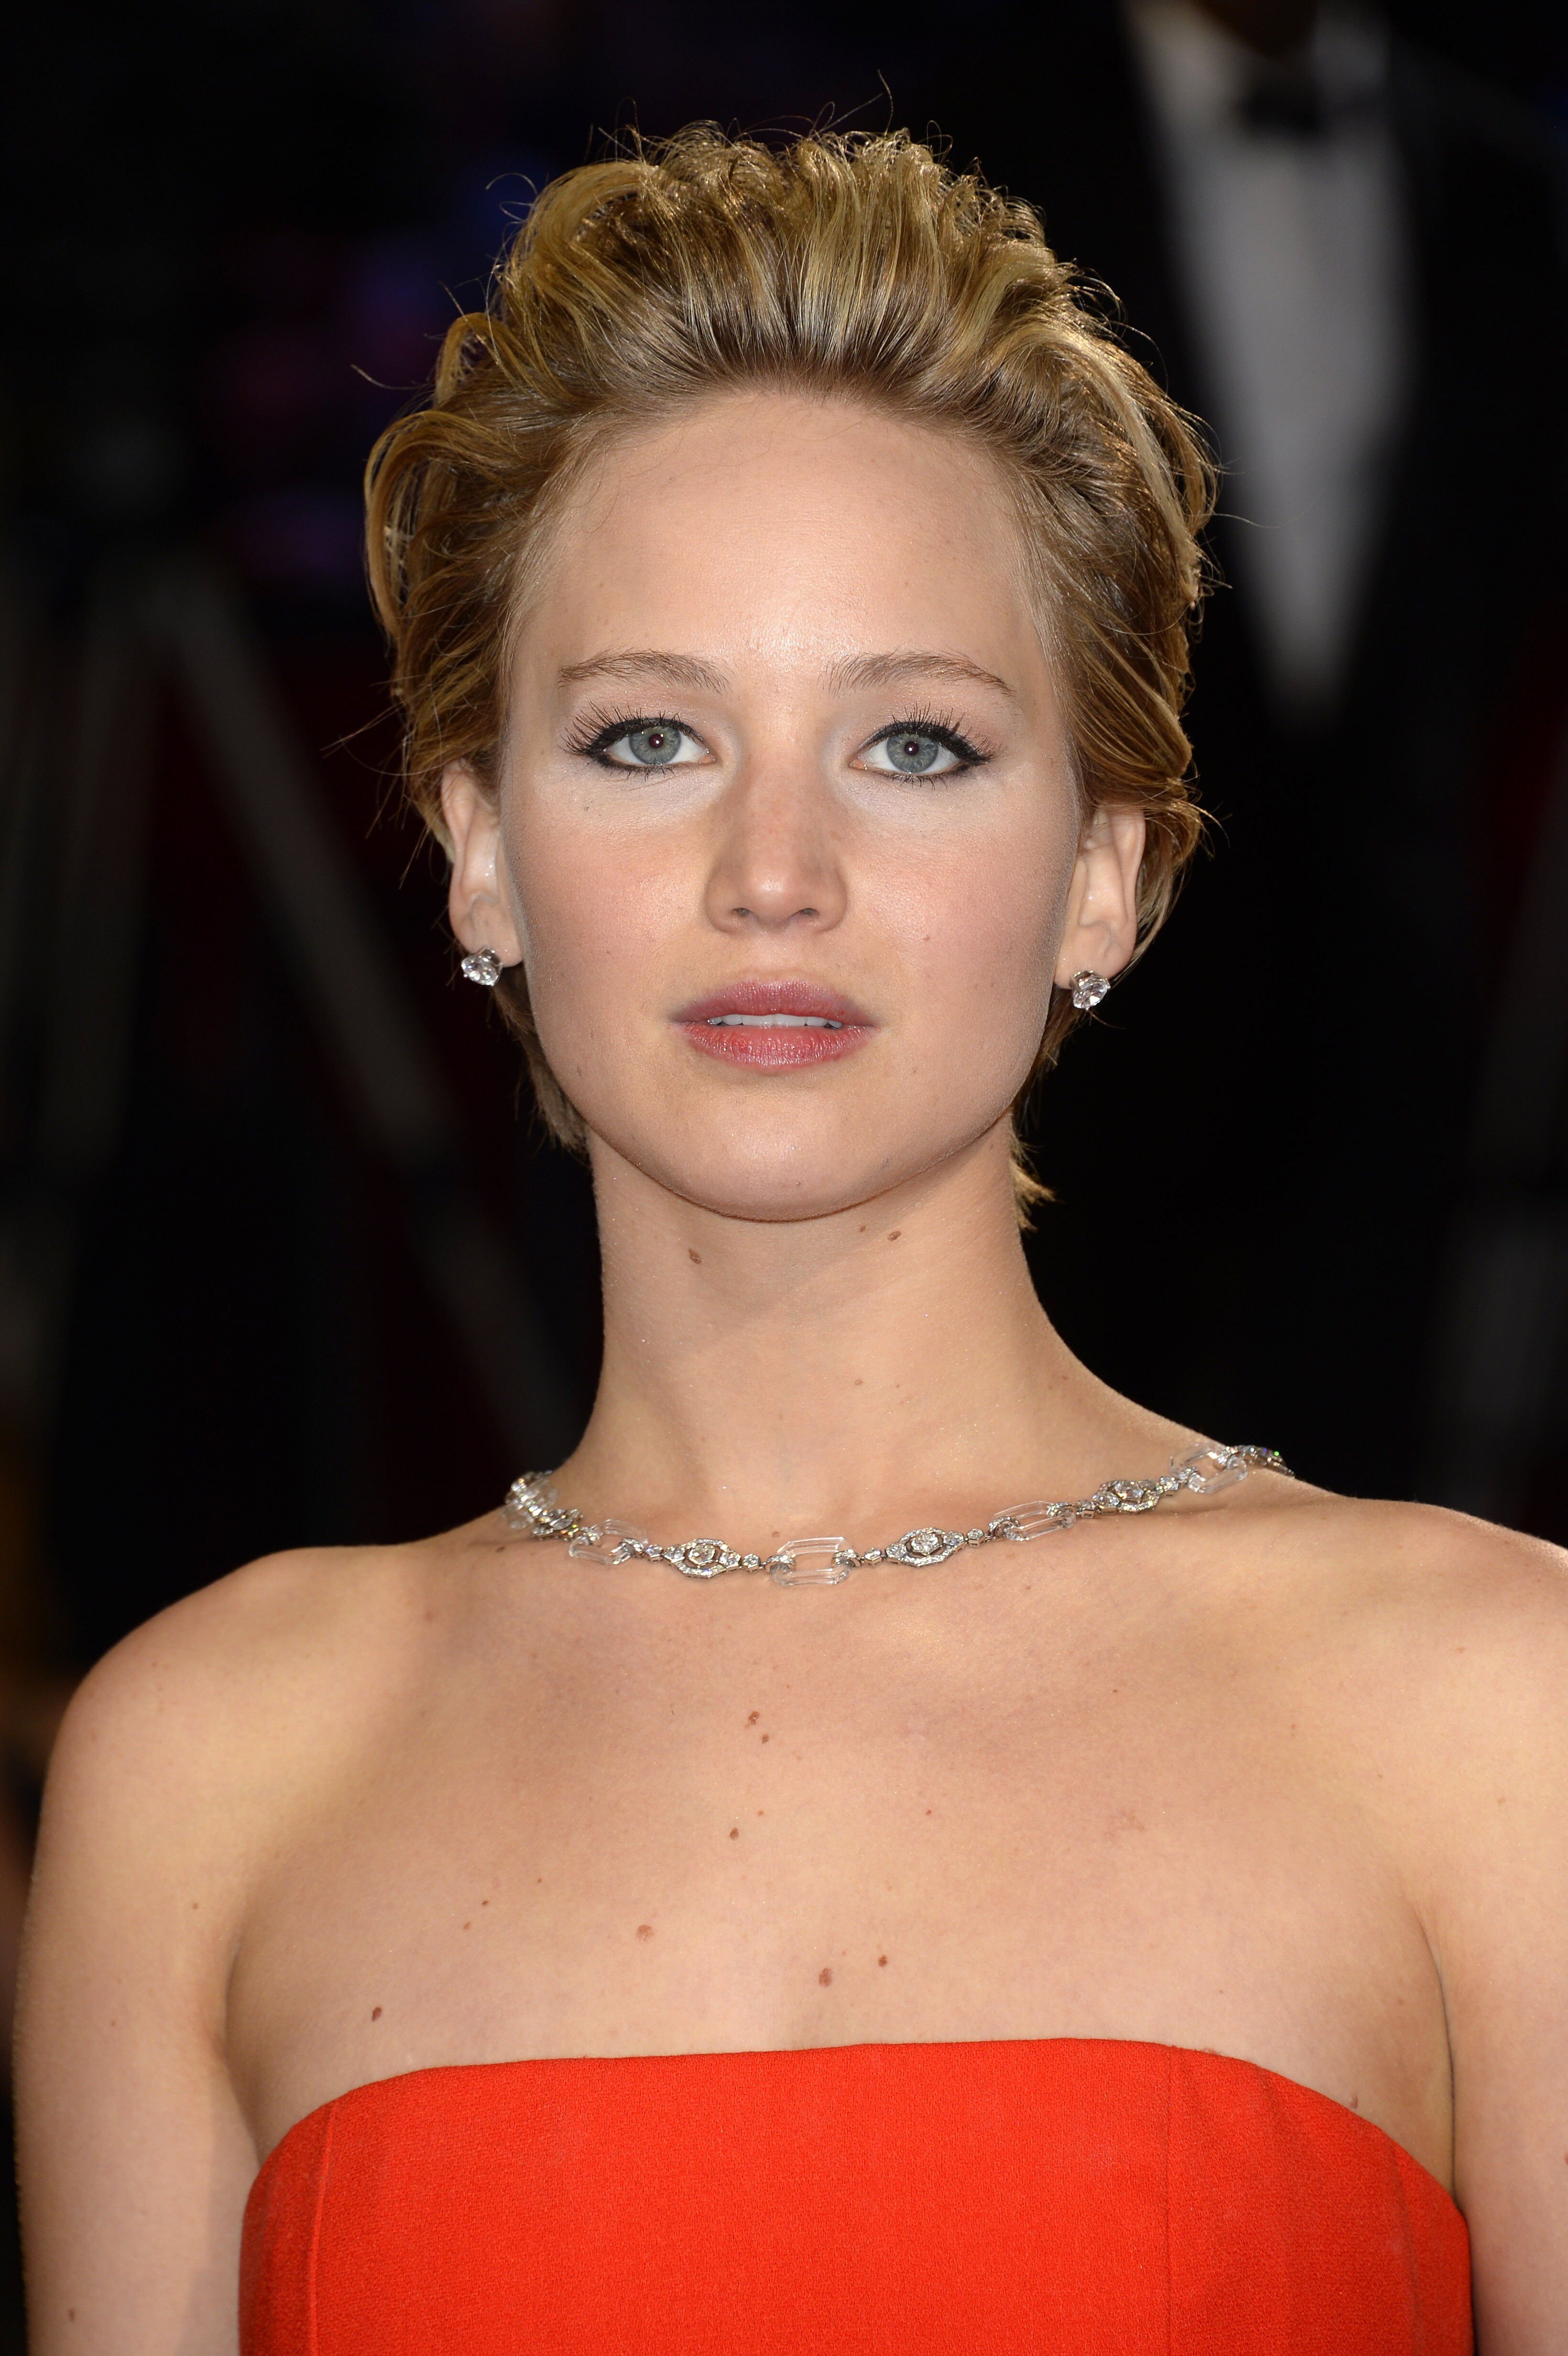 All Nude Celebrity Pictures inquiries begin into nude celebrity photo leaks